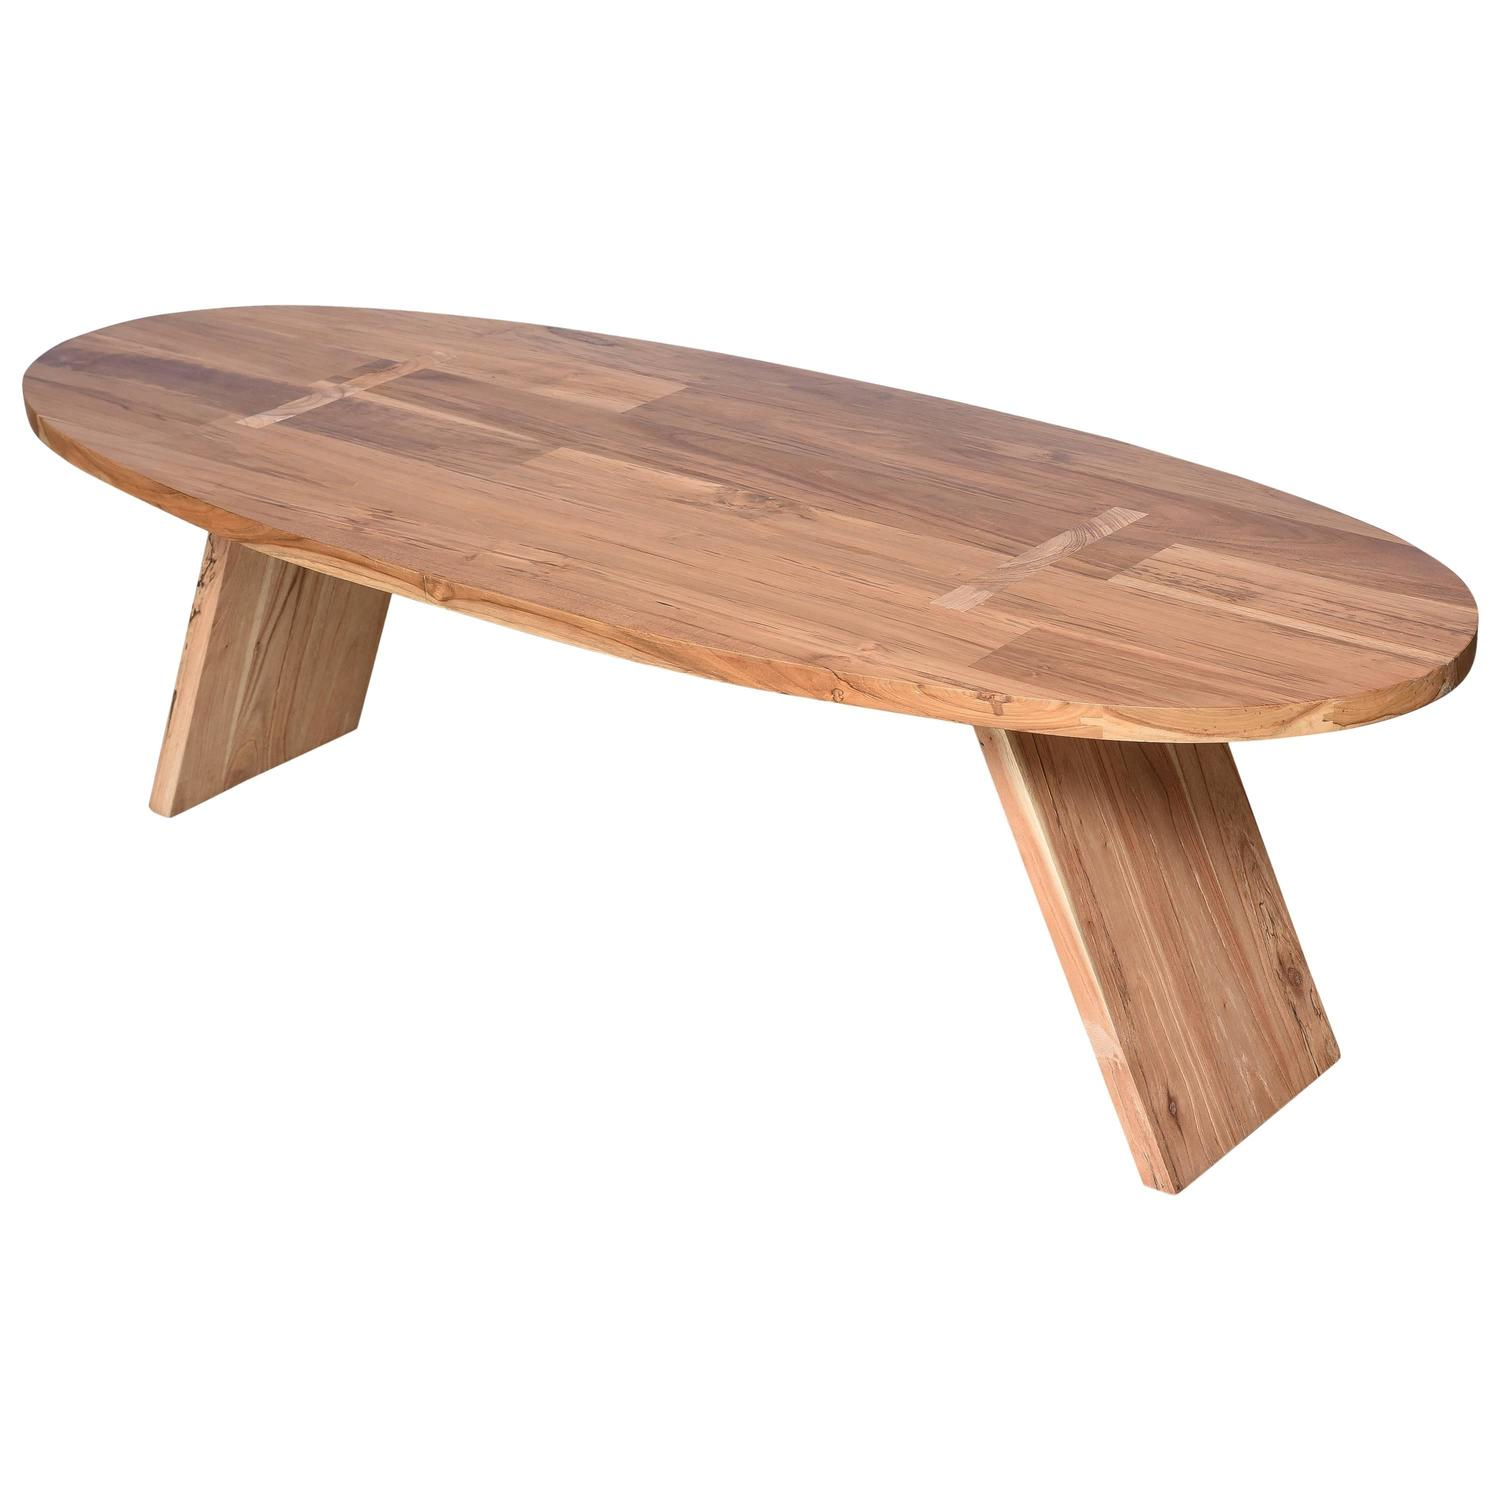 Coffee table teak wood oval surfboard shape handmade for sale at 1stdibs Wood oval coffee table